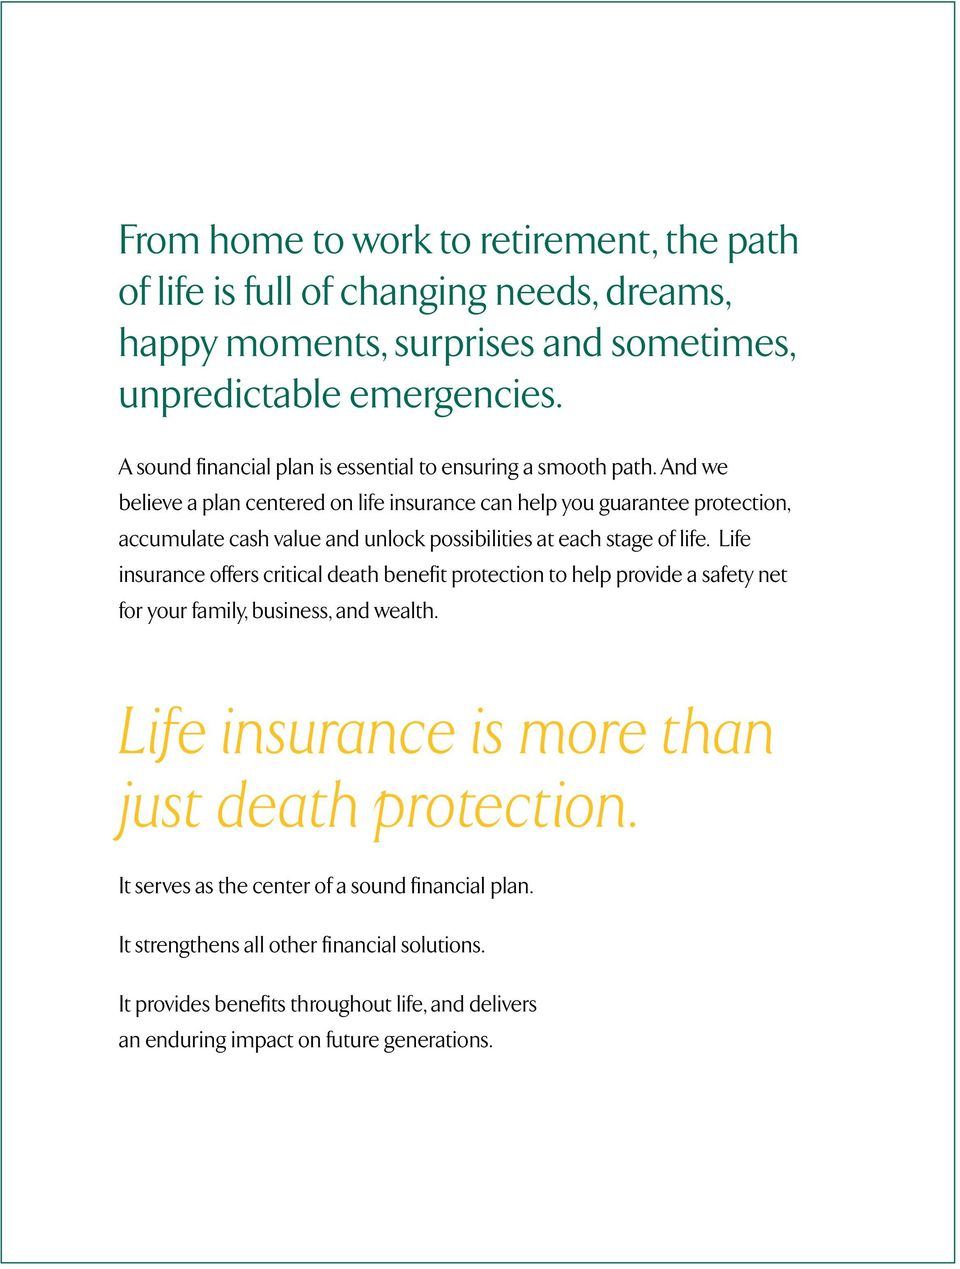 And we believe a plan centered on life insurance can help you guarantee protection, accumulate cash value and unlock possibilities at each stage of life.